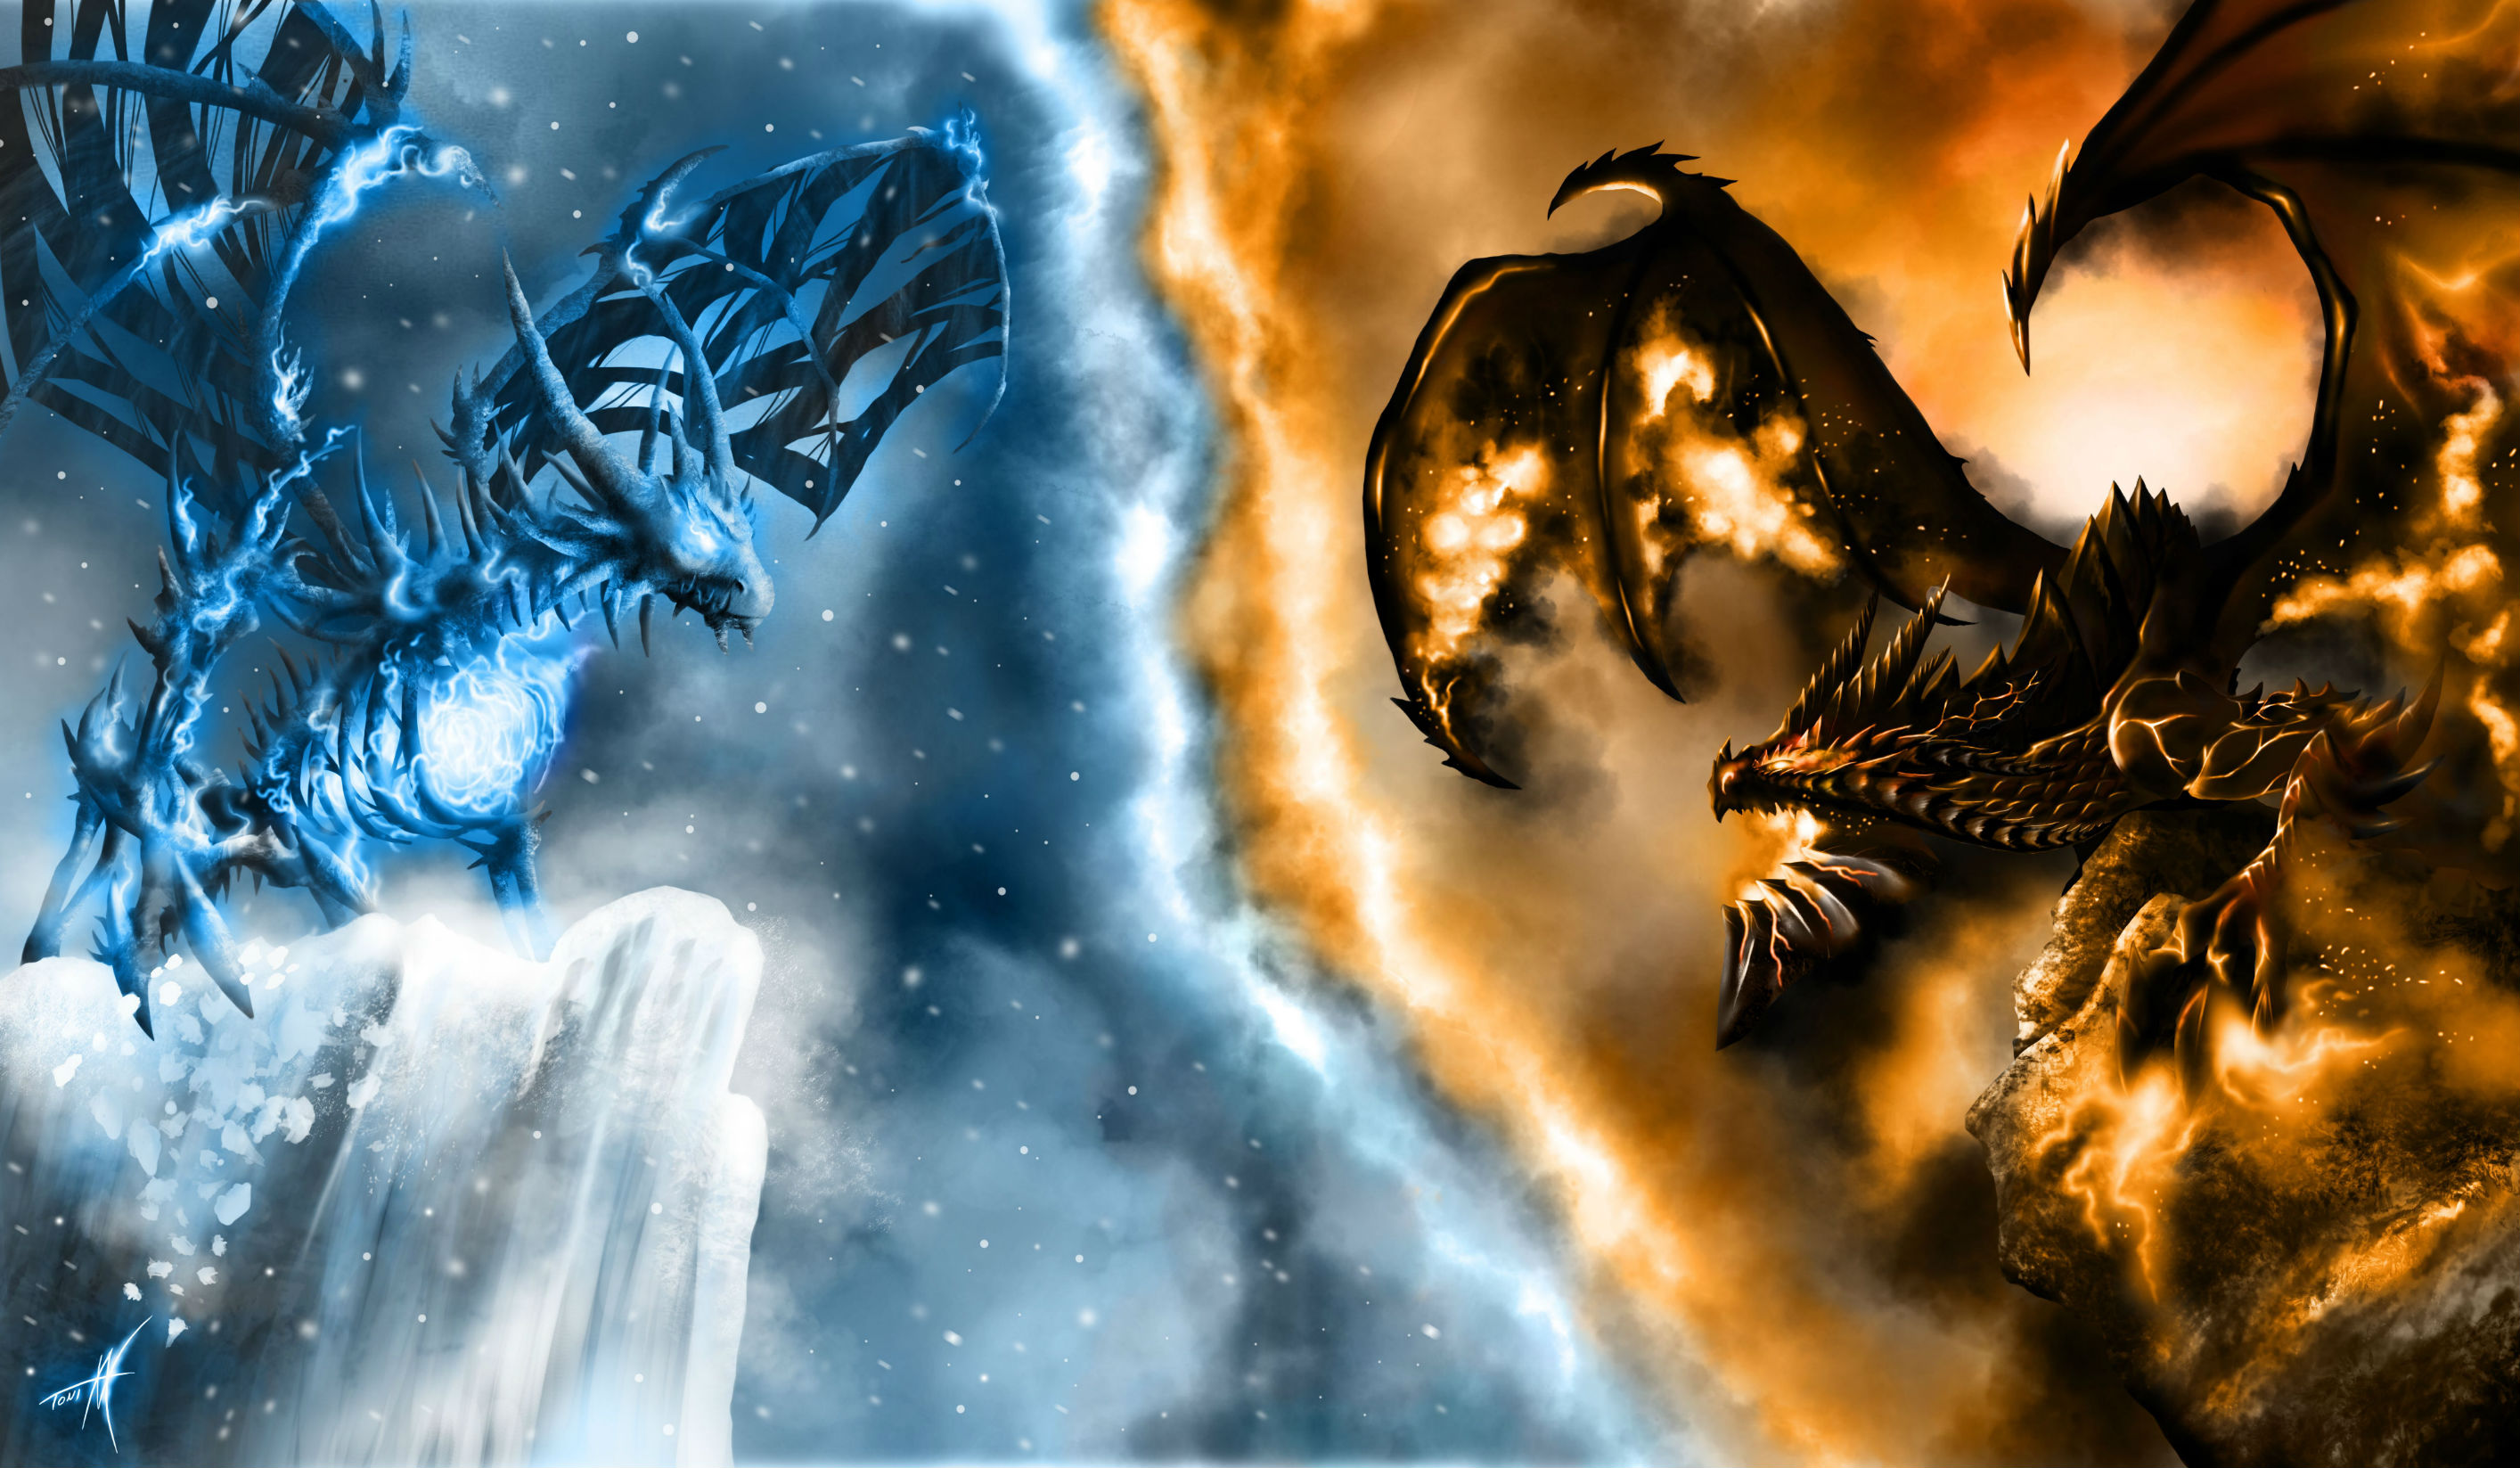 of WarCraft WoW Dragons Fire Snow Games dragon ice fantasy wallpaper 2828x1647